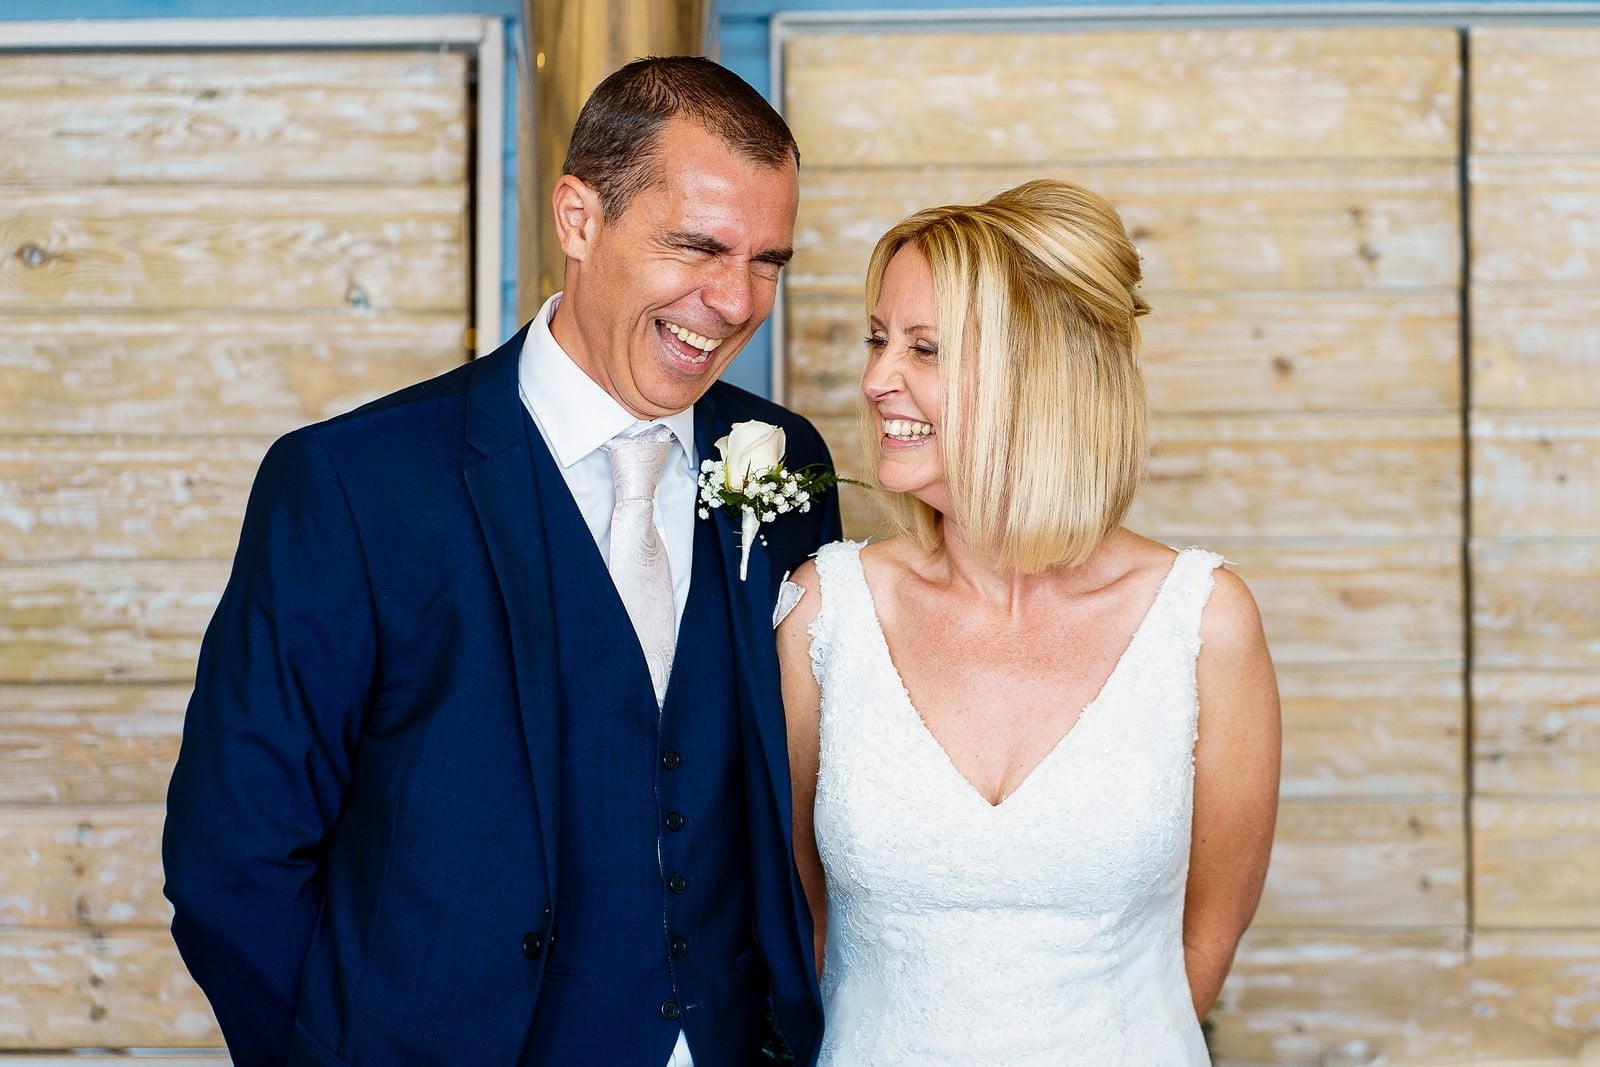 happy bride and groom getting married at lusty glaze in newquay